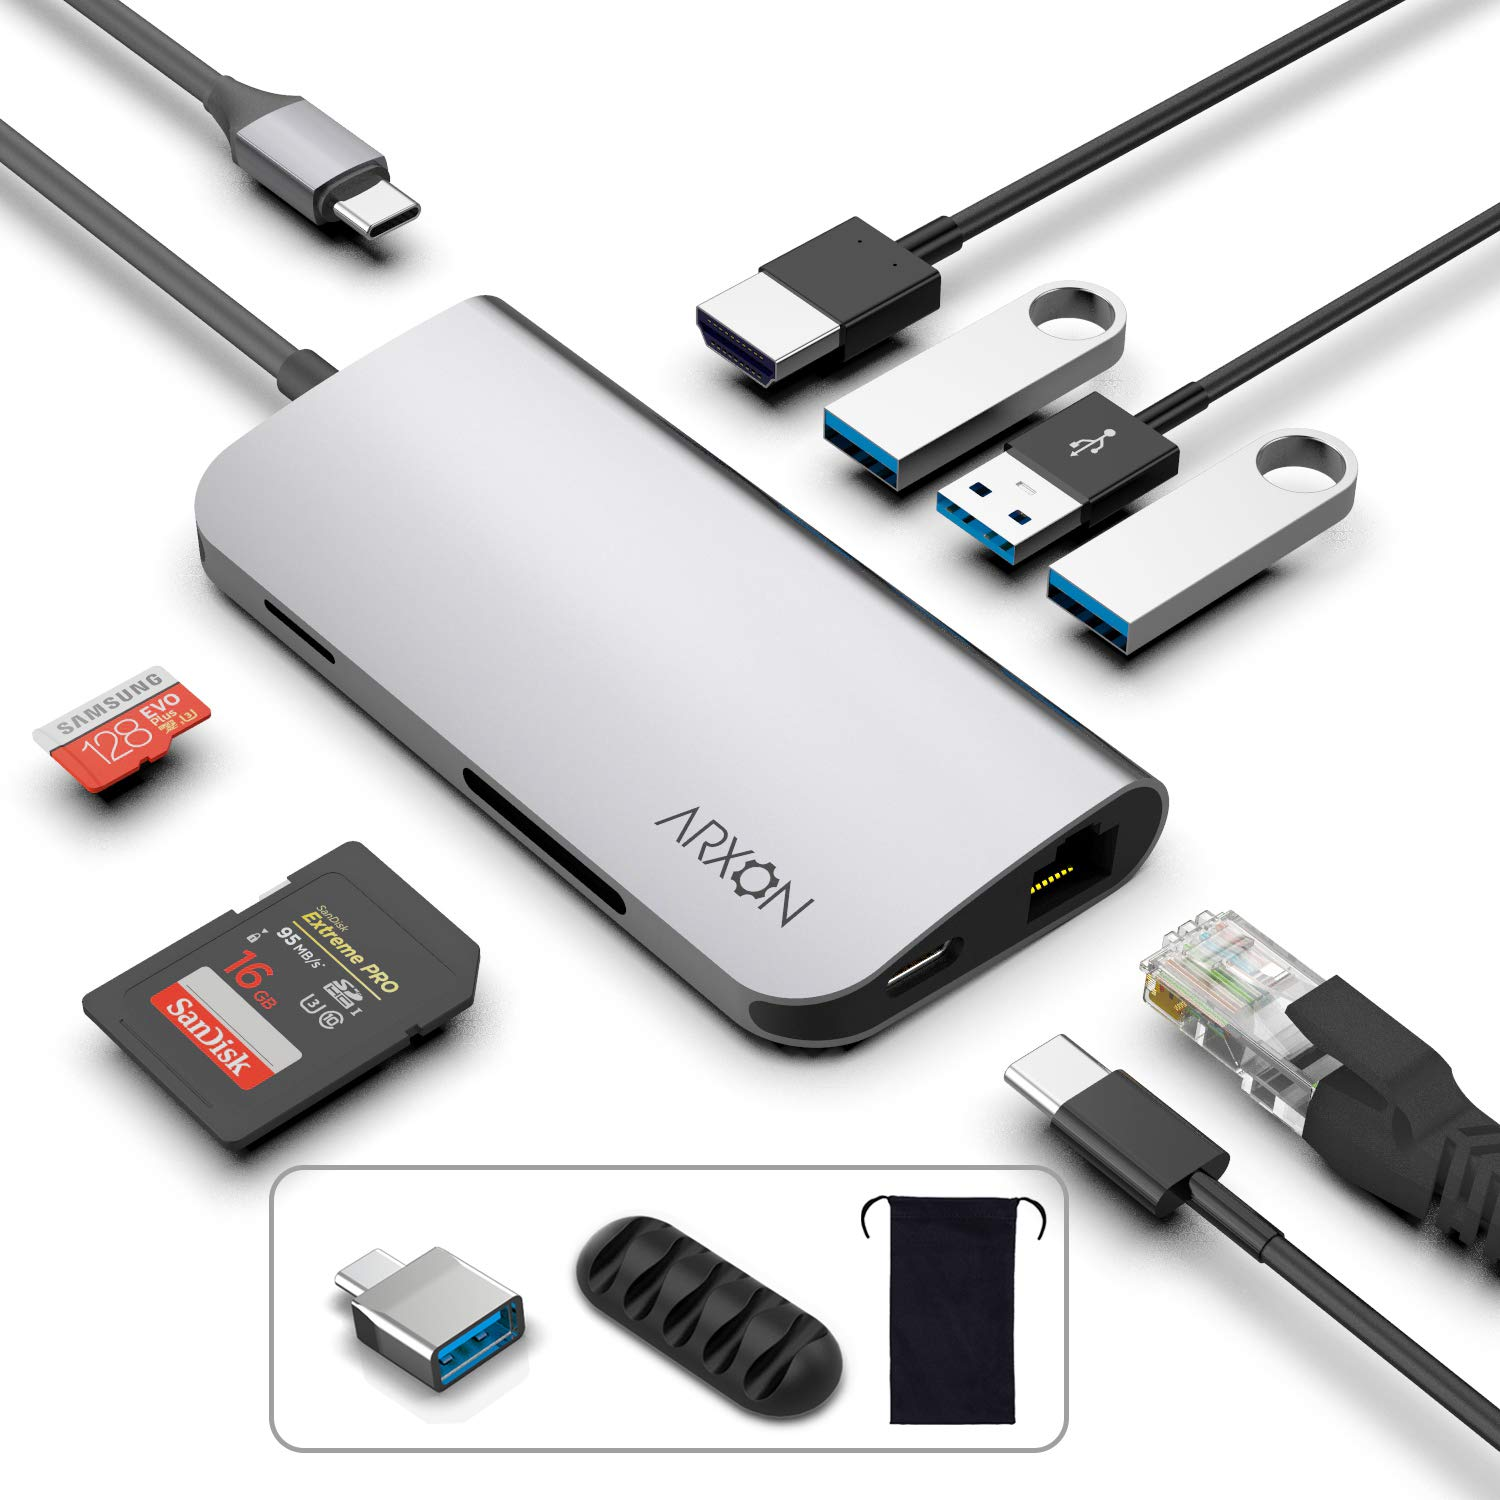 USB C Hub, 8-in-1 Thunderbolt 3 Adapter with 3 USB 3.0 Ports, 4K HDMI, Ethernet Port, SD/TR Card Reader, USB-C Power Delivery, Portable for Mac Pro 2016/2017/2018 & Other Type-C Laptop by Arxon